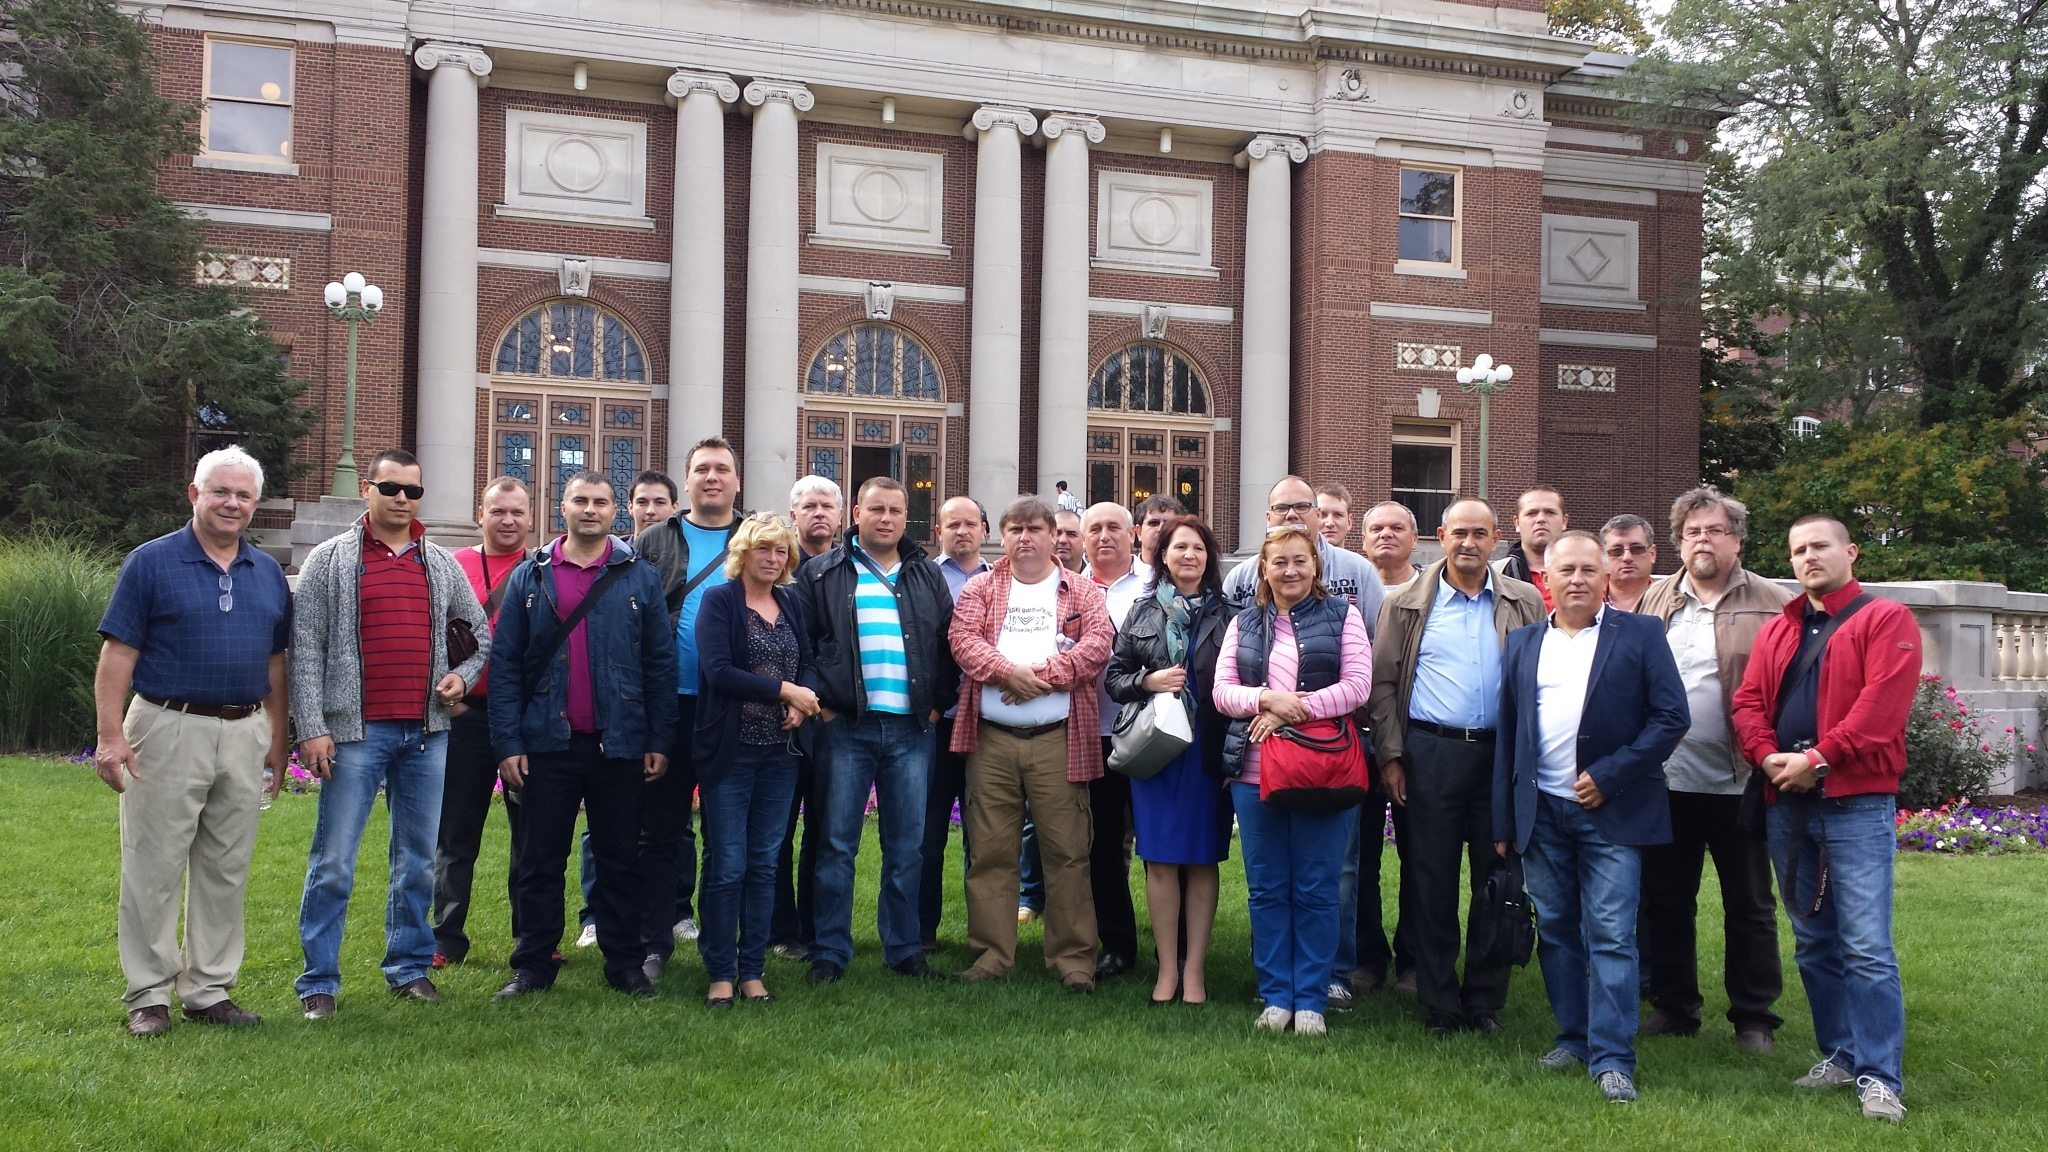 agtours.us tour group in front of historical building